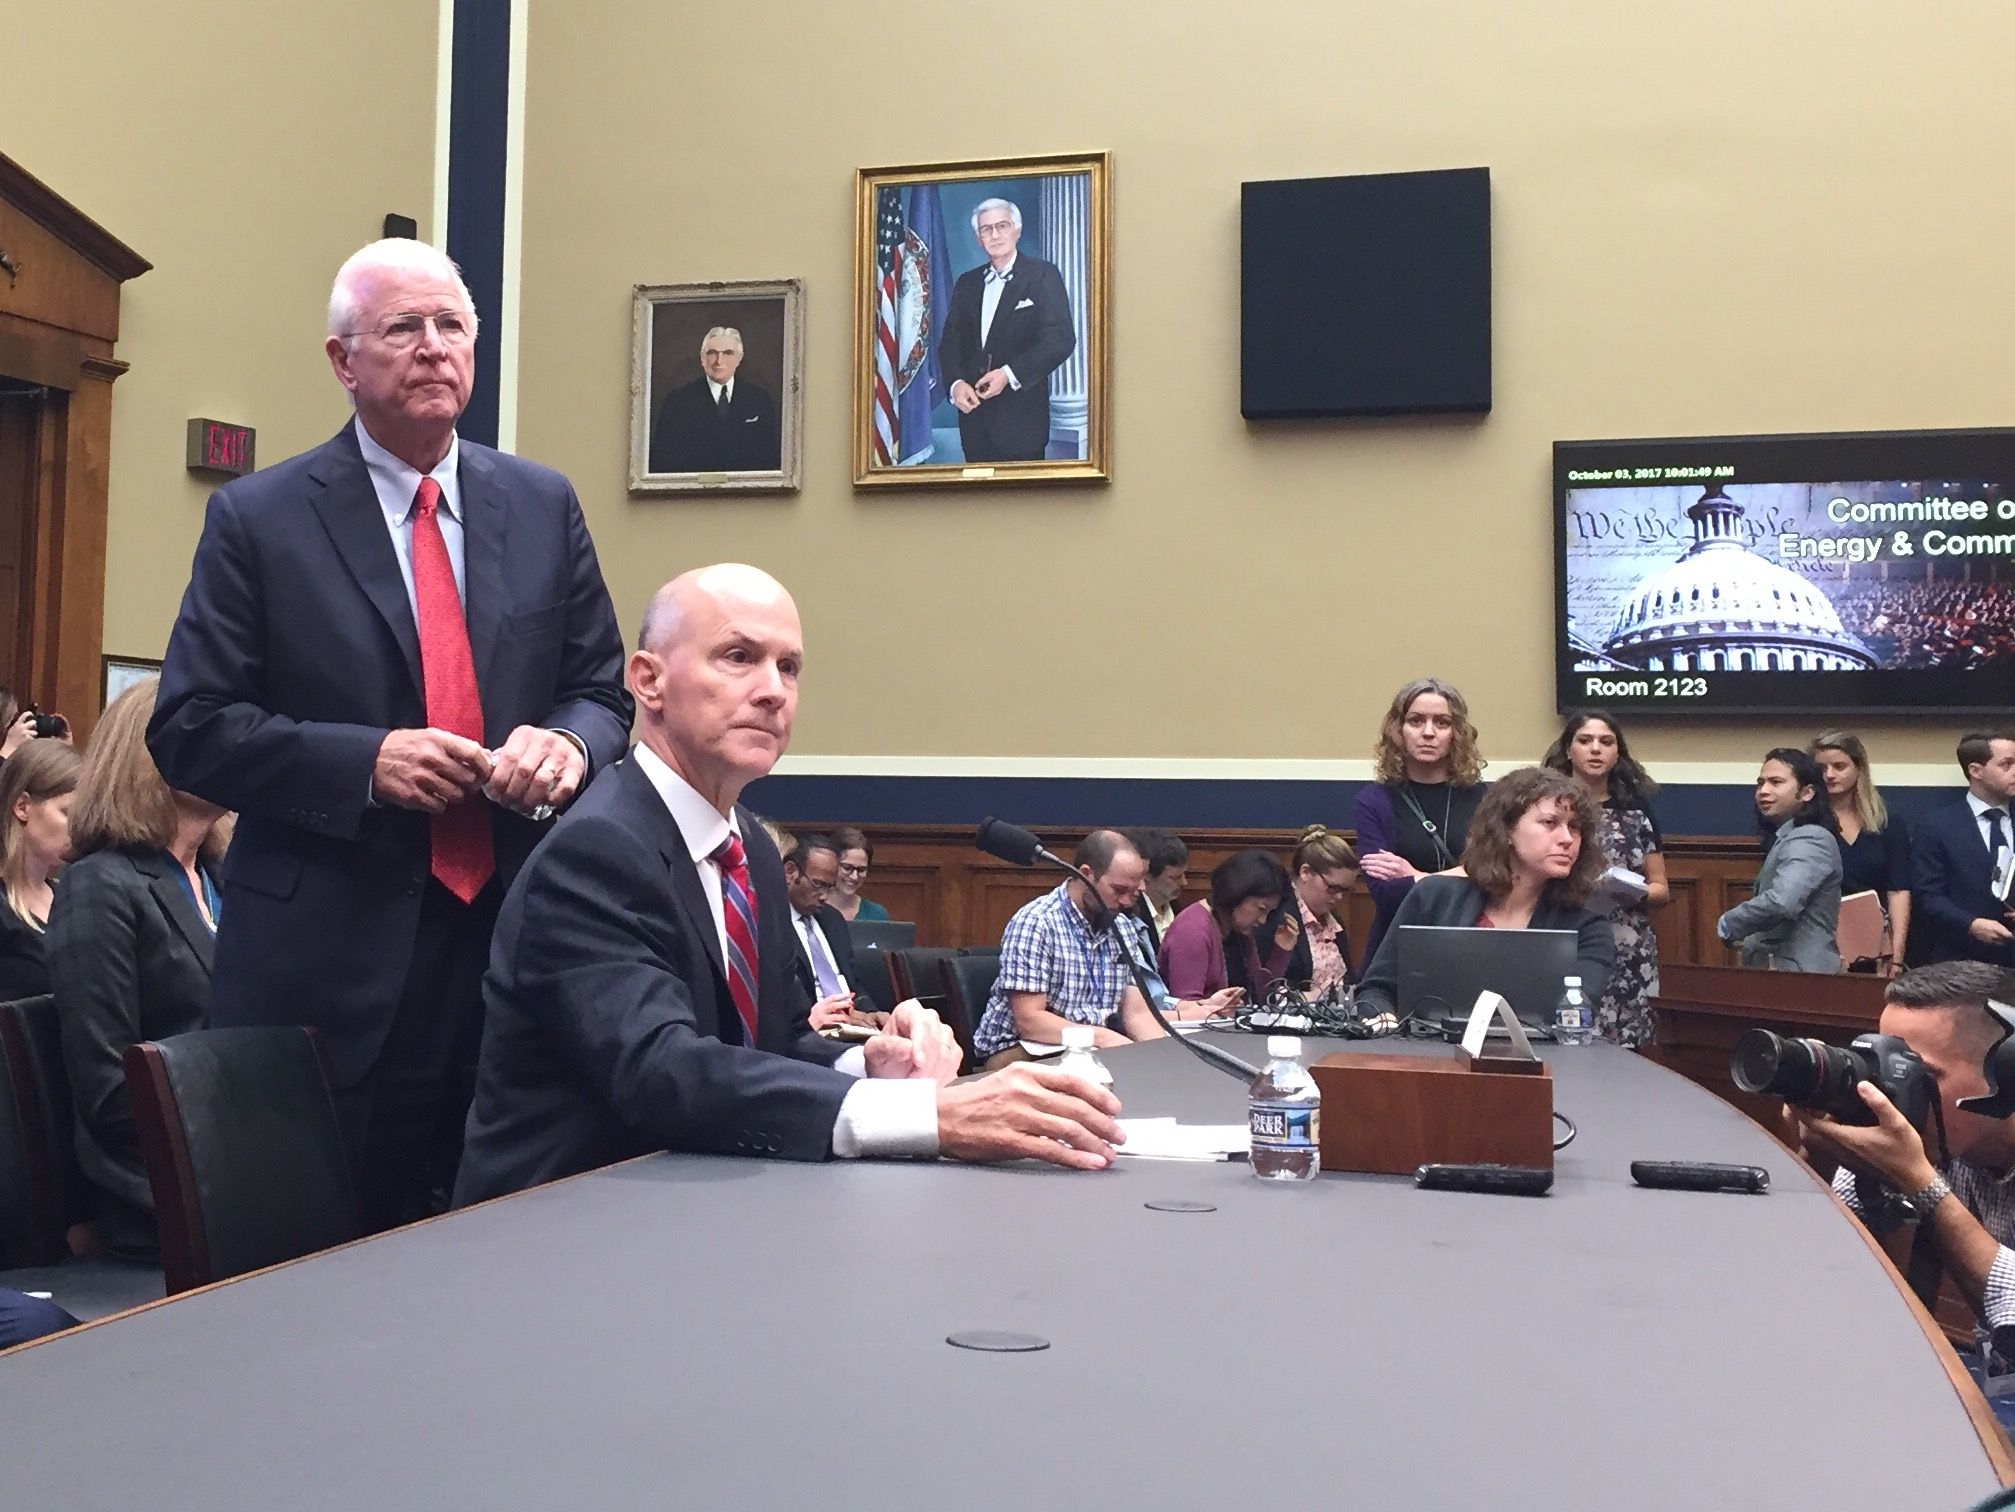 Former Equifax CEO Richard Smith testifies before the House Energy and Commerce Committee on the data breach that jeopardized the personal information of more than 145 million Americans. Tues. October 3, 2017. (Credit: Sinclair Broadcast Group)